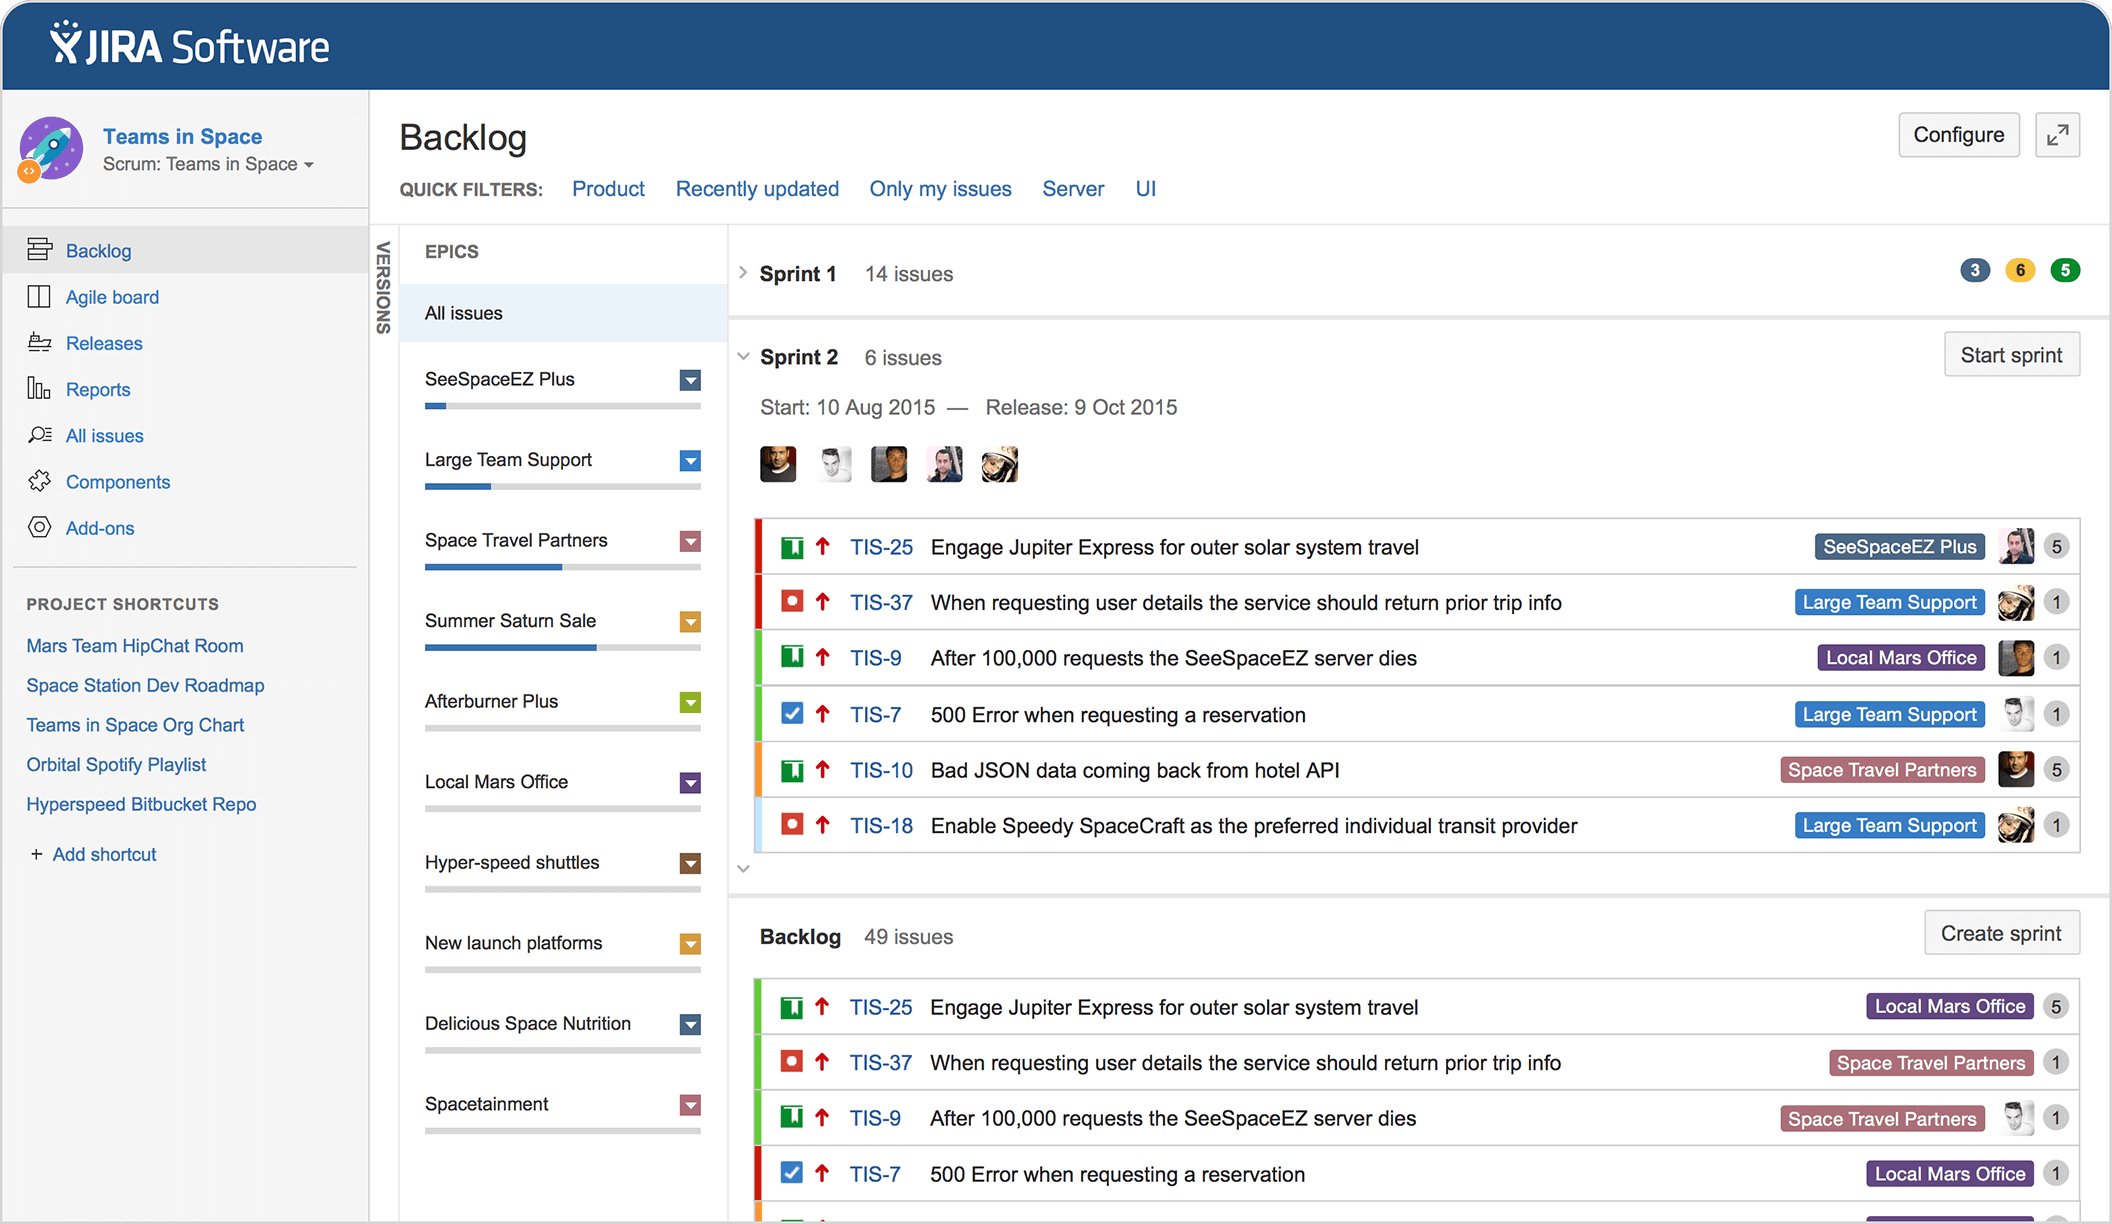 JIRA | Issue & Project Tracking Software | Atlassian